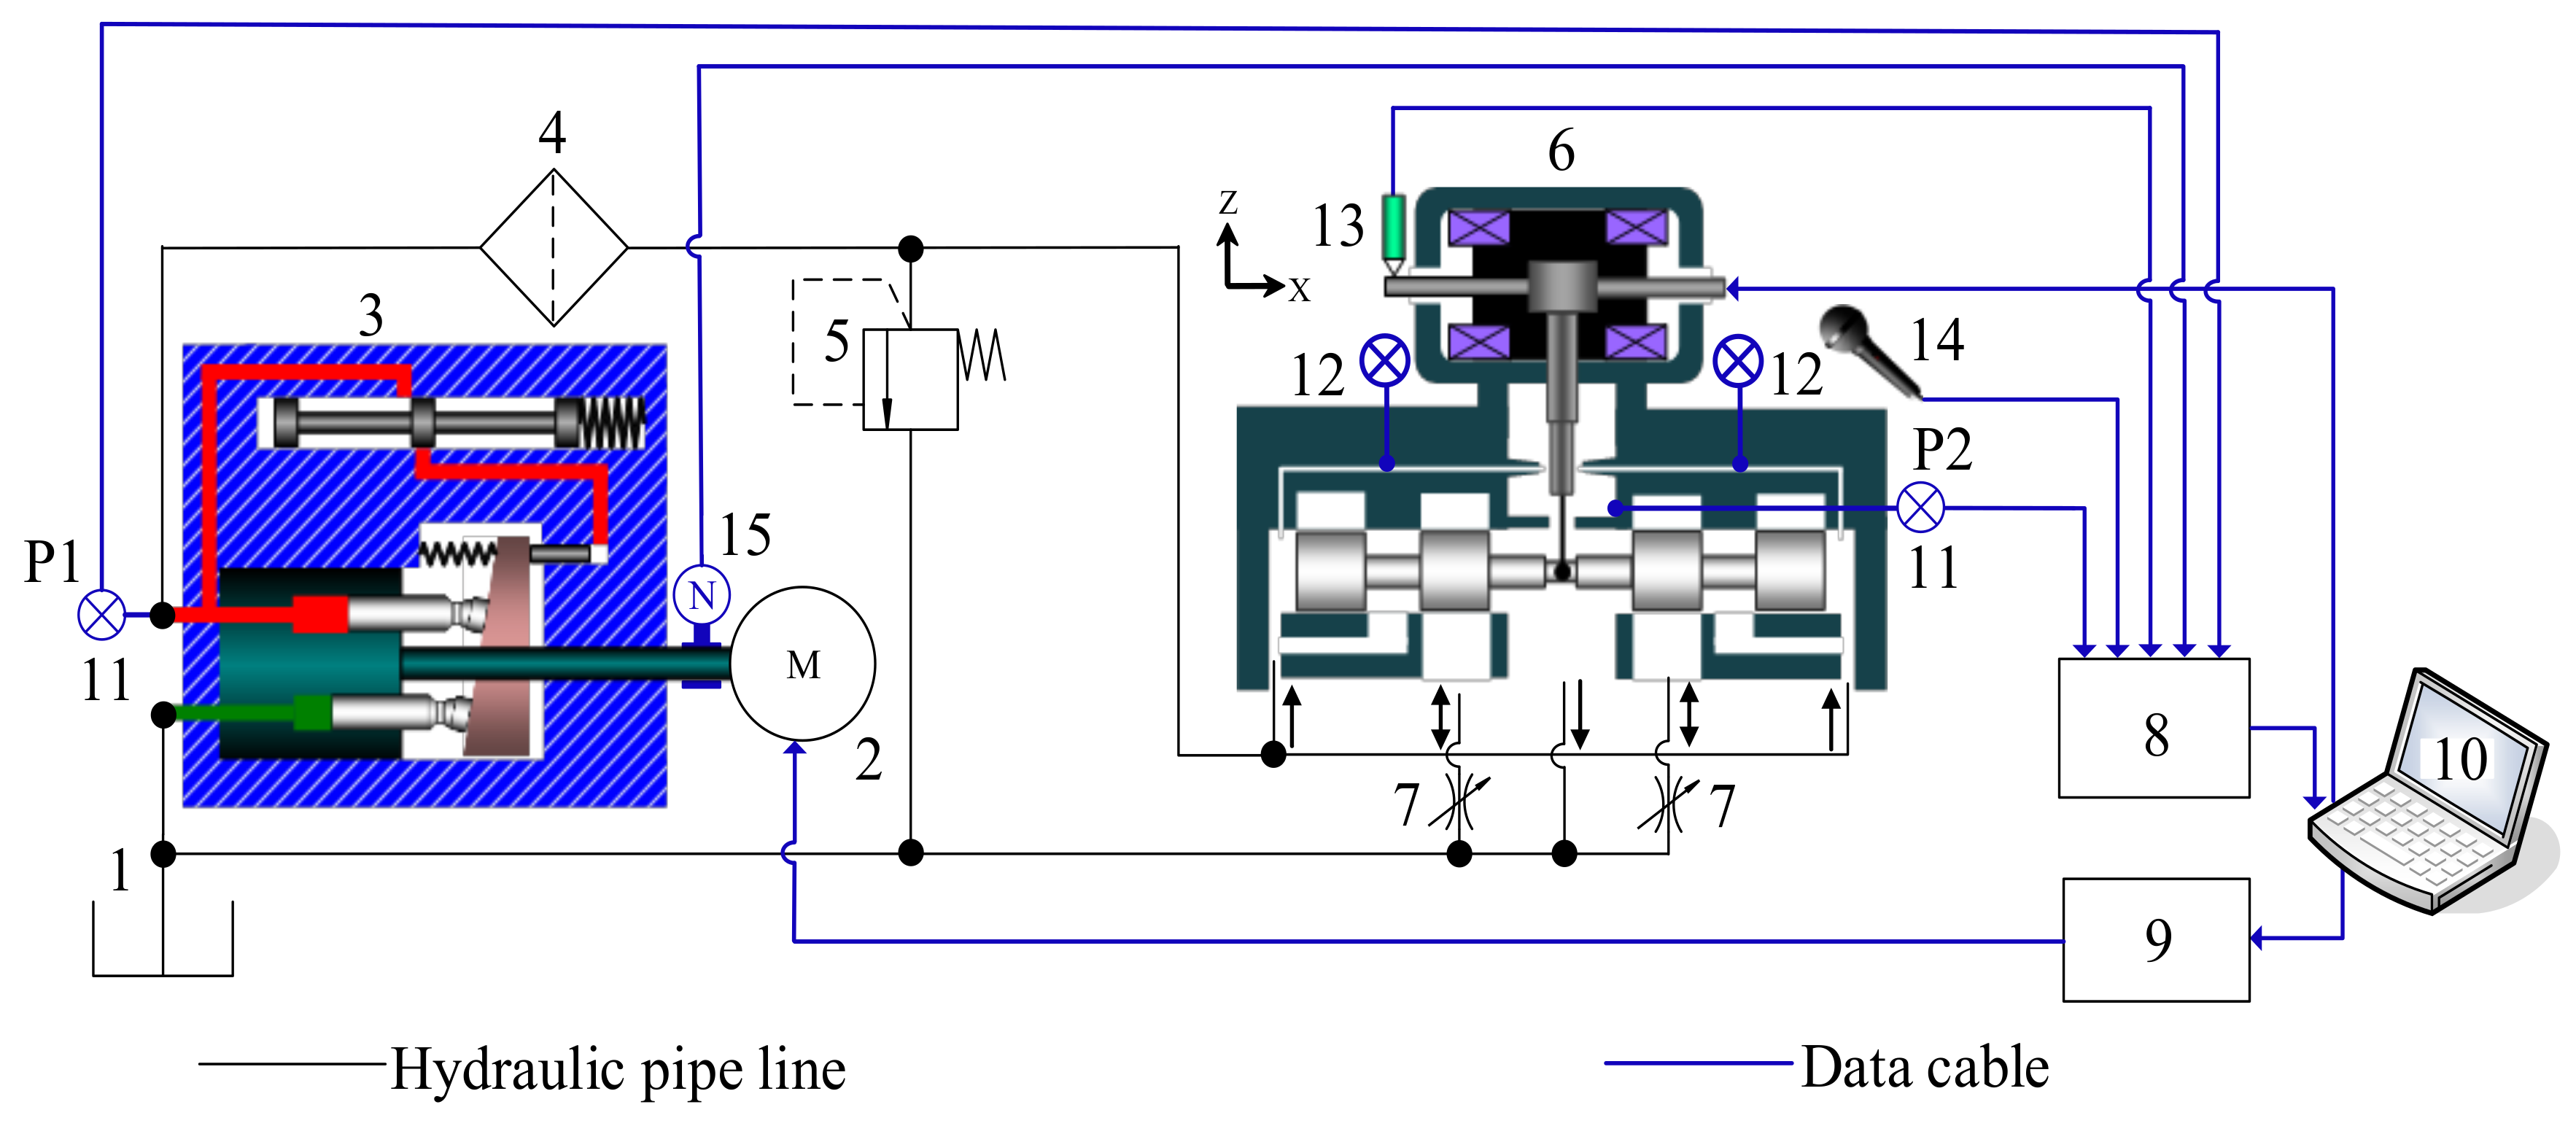 Energies Free Full Text Suppression Of Squeal Noise Excited By System Block Diagram Furthermore Pa Setup On Sound 11 00955 G006 Figure 6 Schematic The Experimental